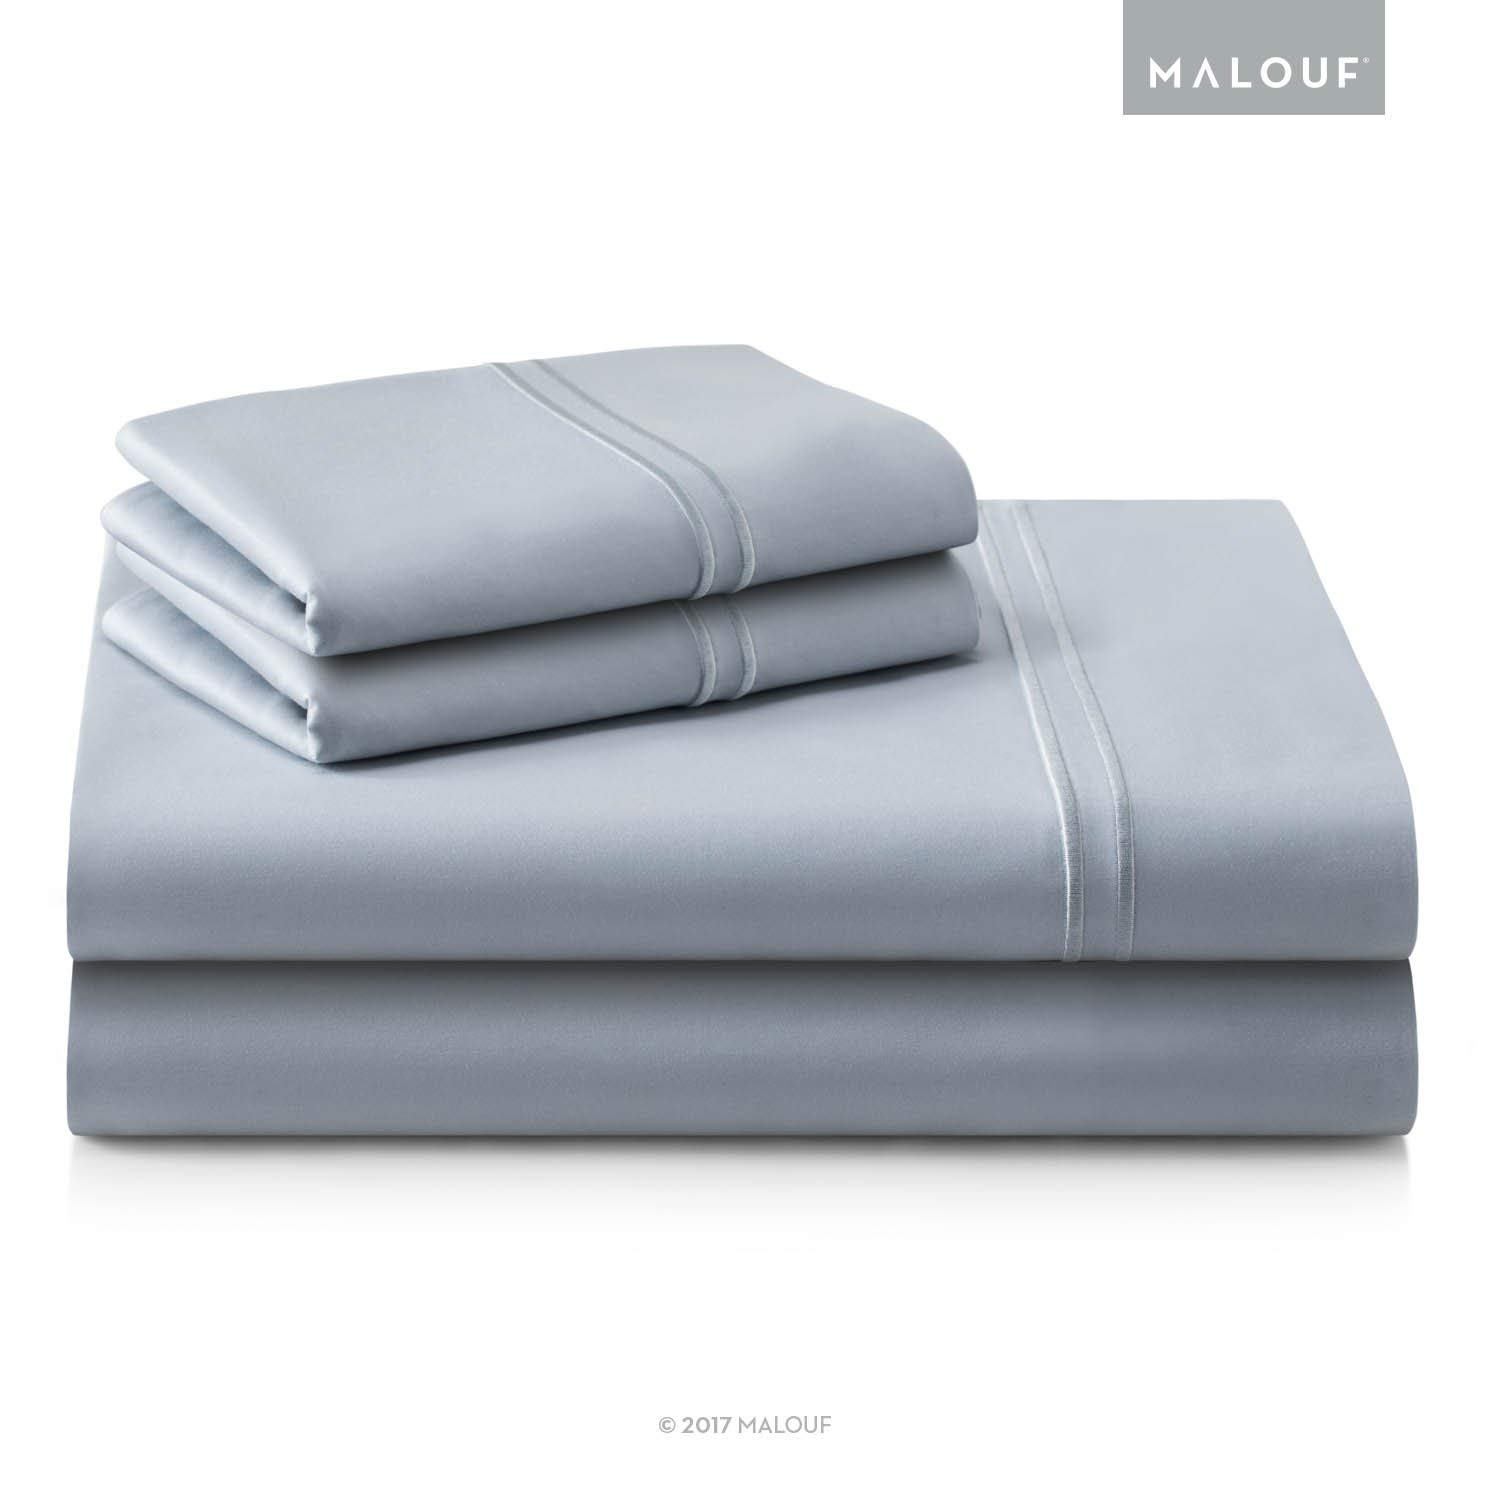 WOVEN SUPIMA Premium Cotton Sheets - 100 Percent American Grown - Extra Long Staple - Sateen Weave - Extra Deep Pockets - Single Ply - 600 Thread Count - King - Smoke